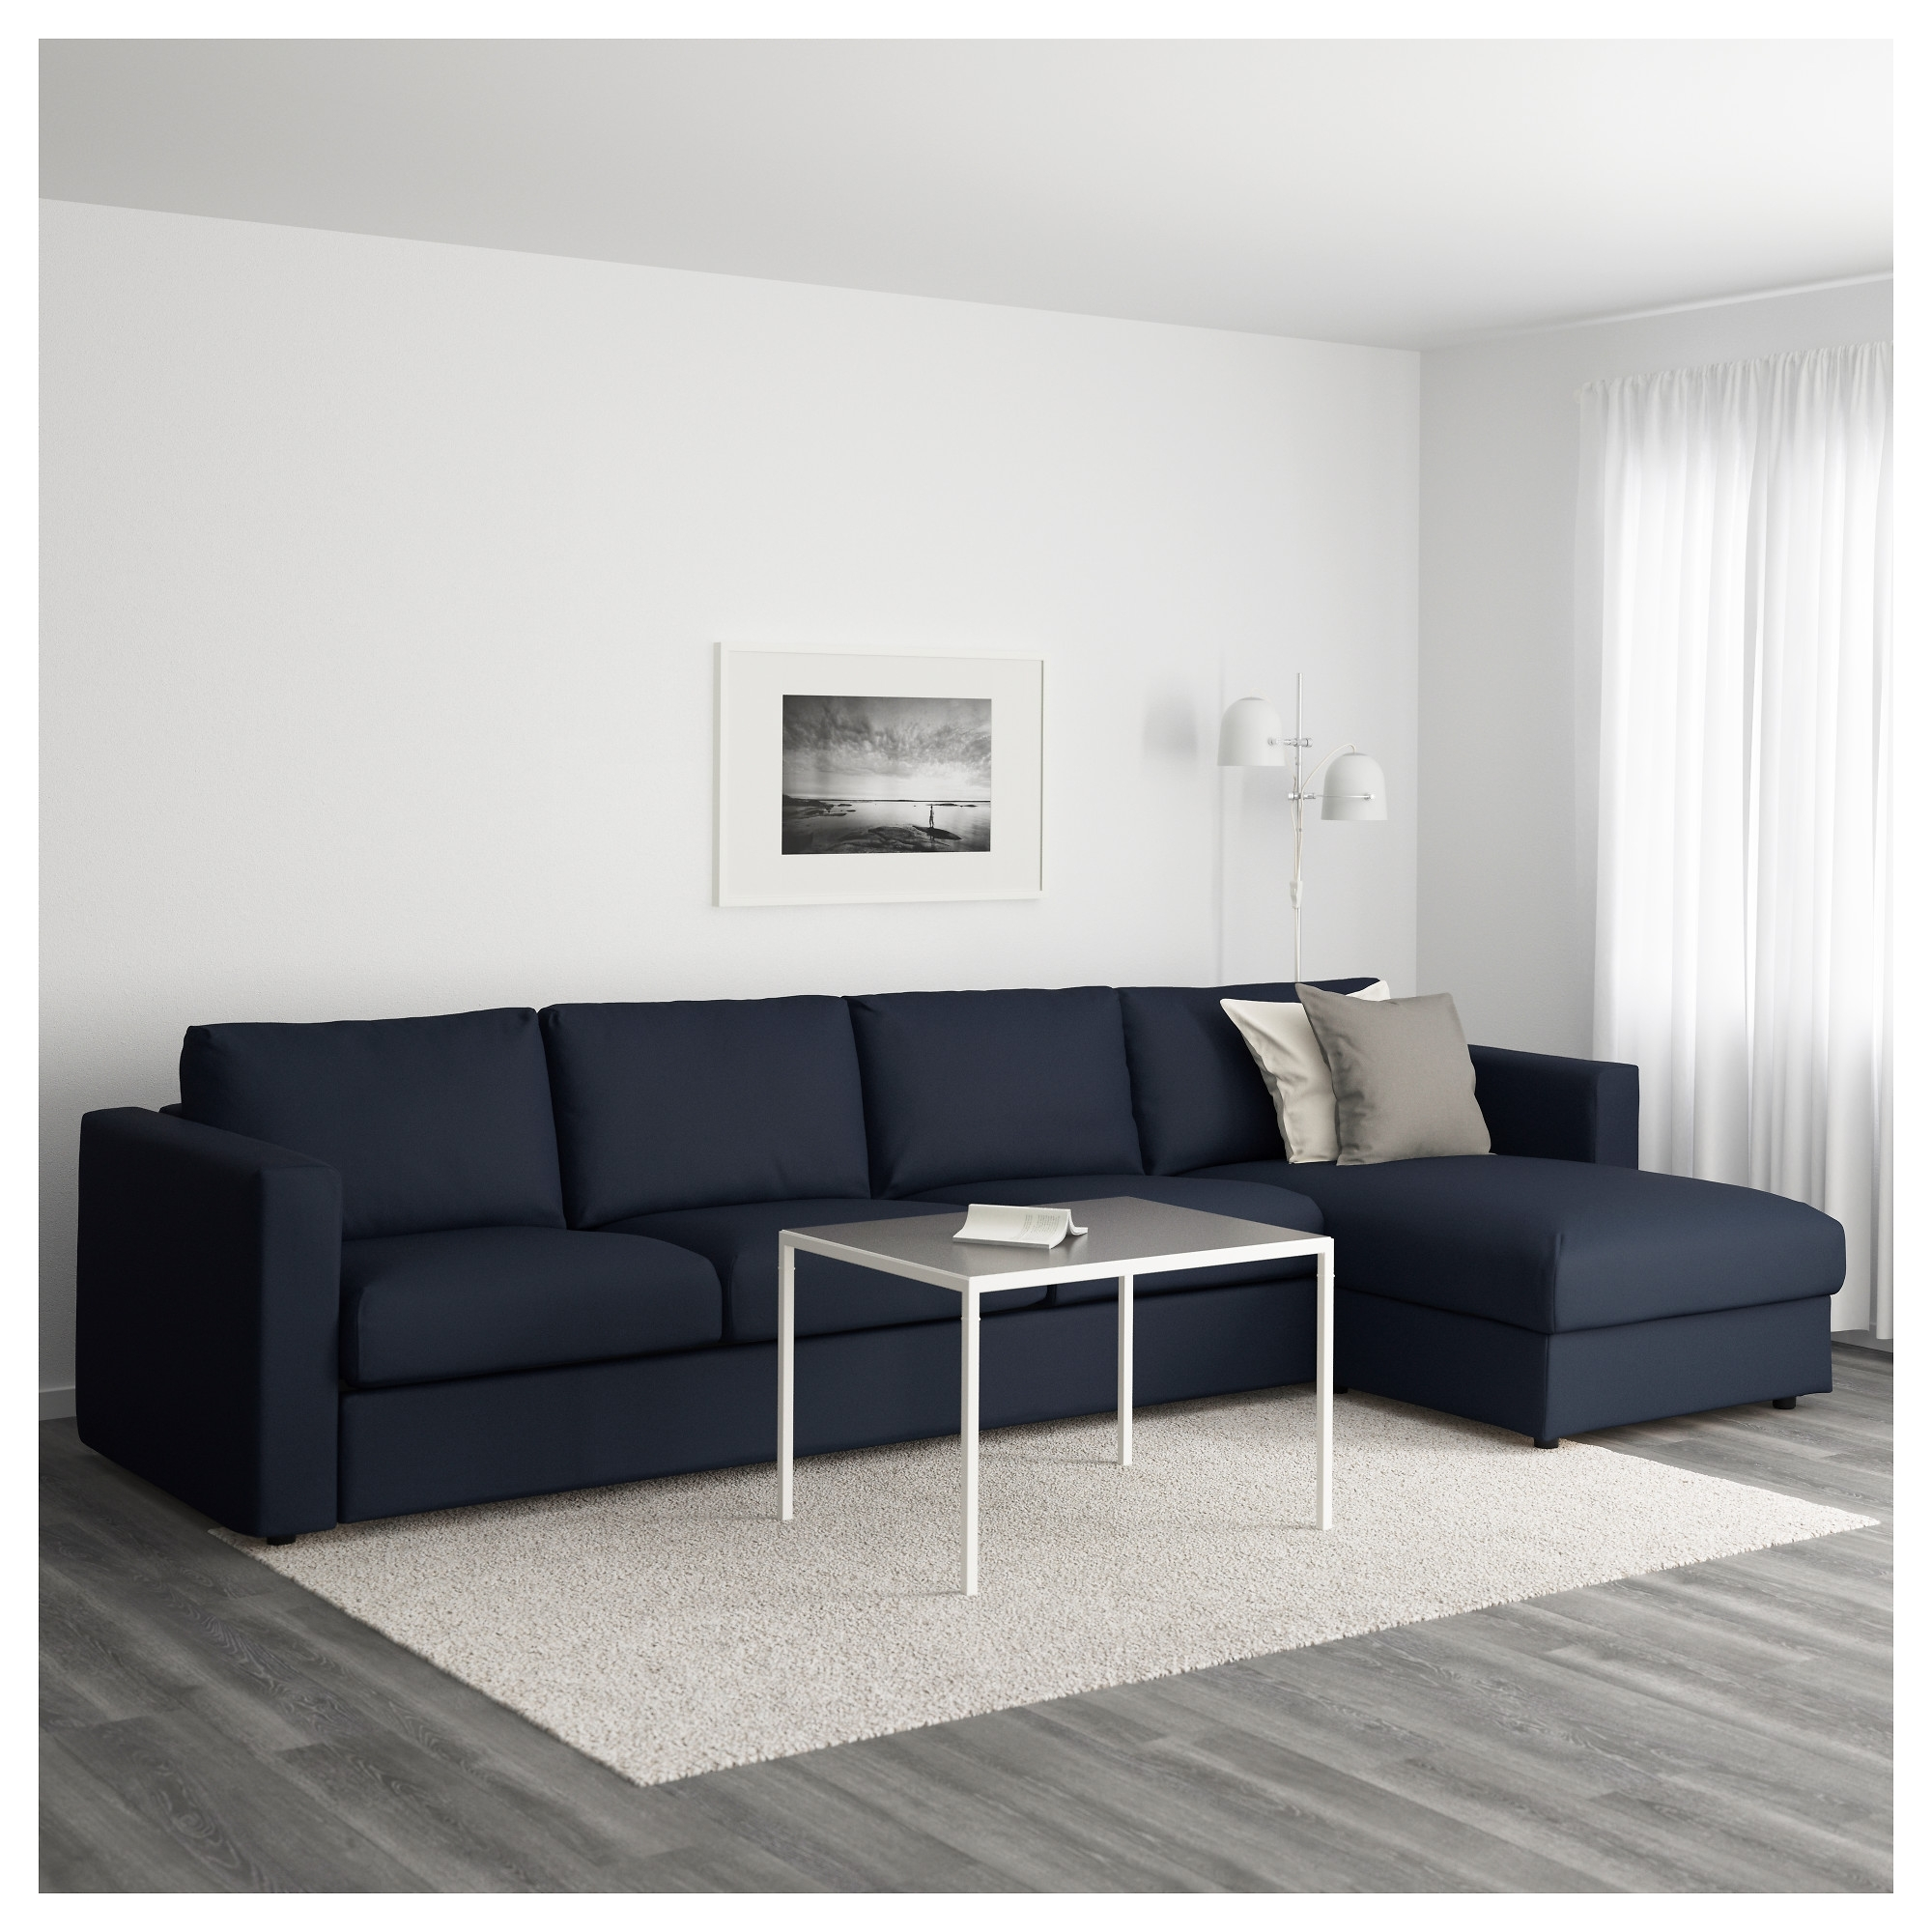 4 Seat Sofas For Recent Vimle Sofa With Chaise Longue Gräsbo Black Blue